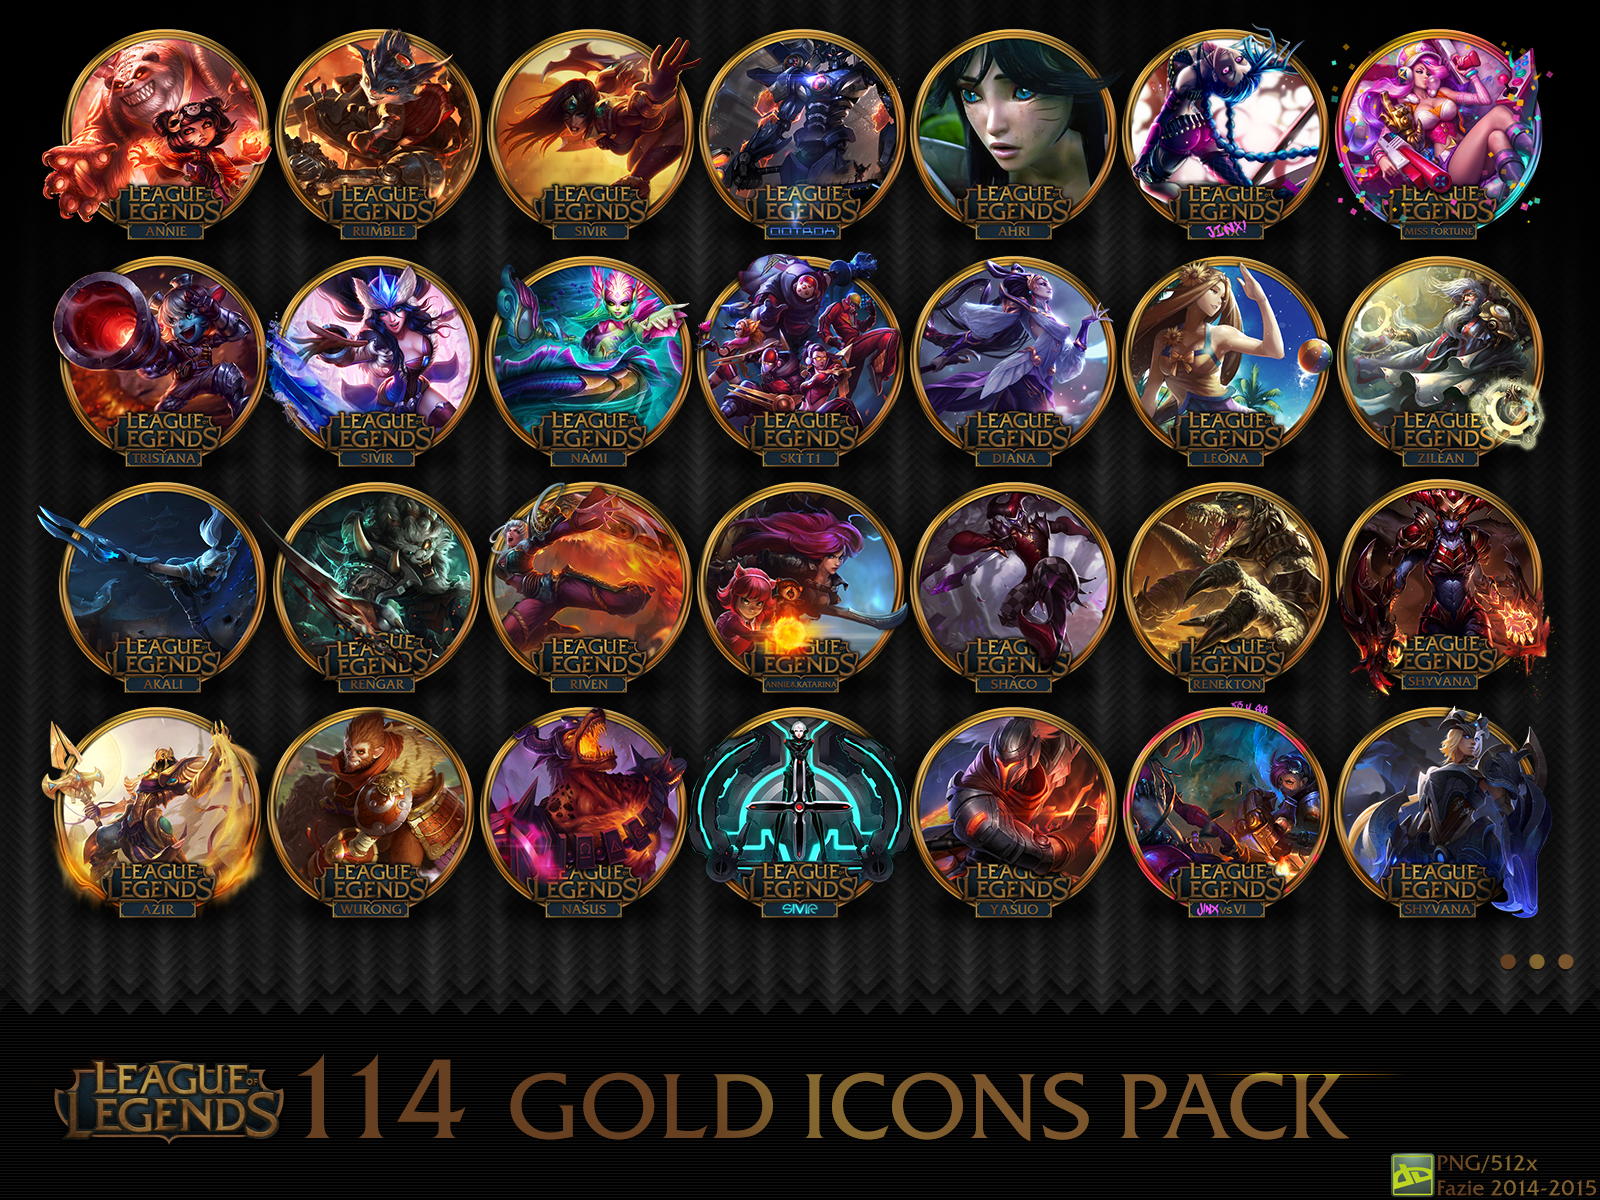 114 league of legends gold icons pack by fazie69 on deviantart